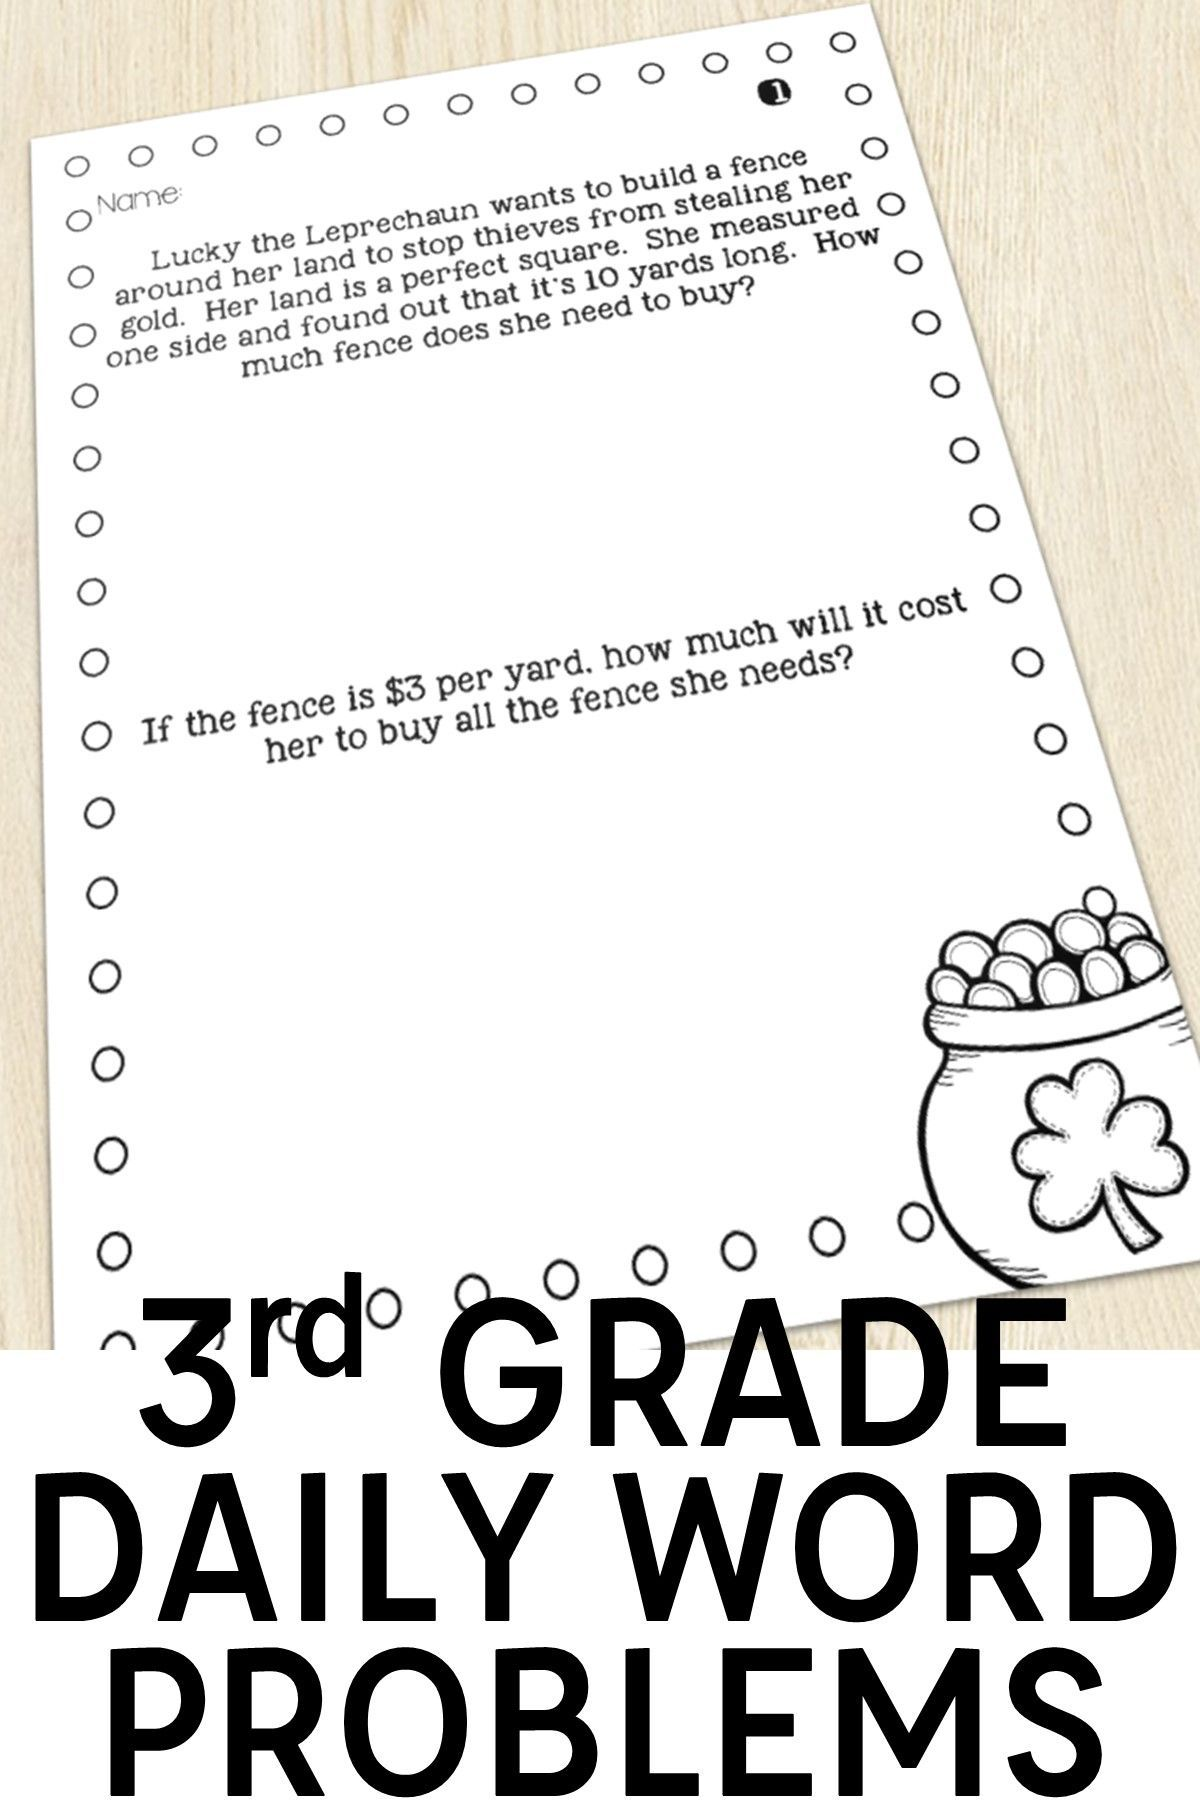 small resolution of https://cute766.info/3rd-grade-multi-step-word-problems-of-the-day-bundle-word-problems-3rd-grade-words-multi/